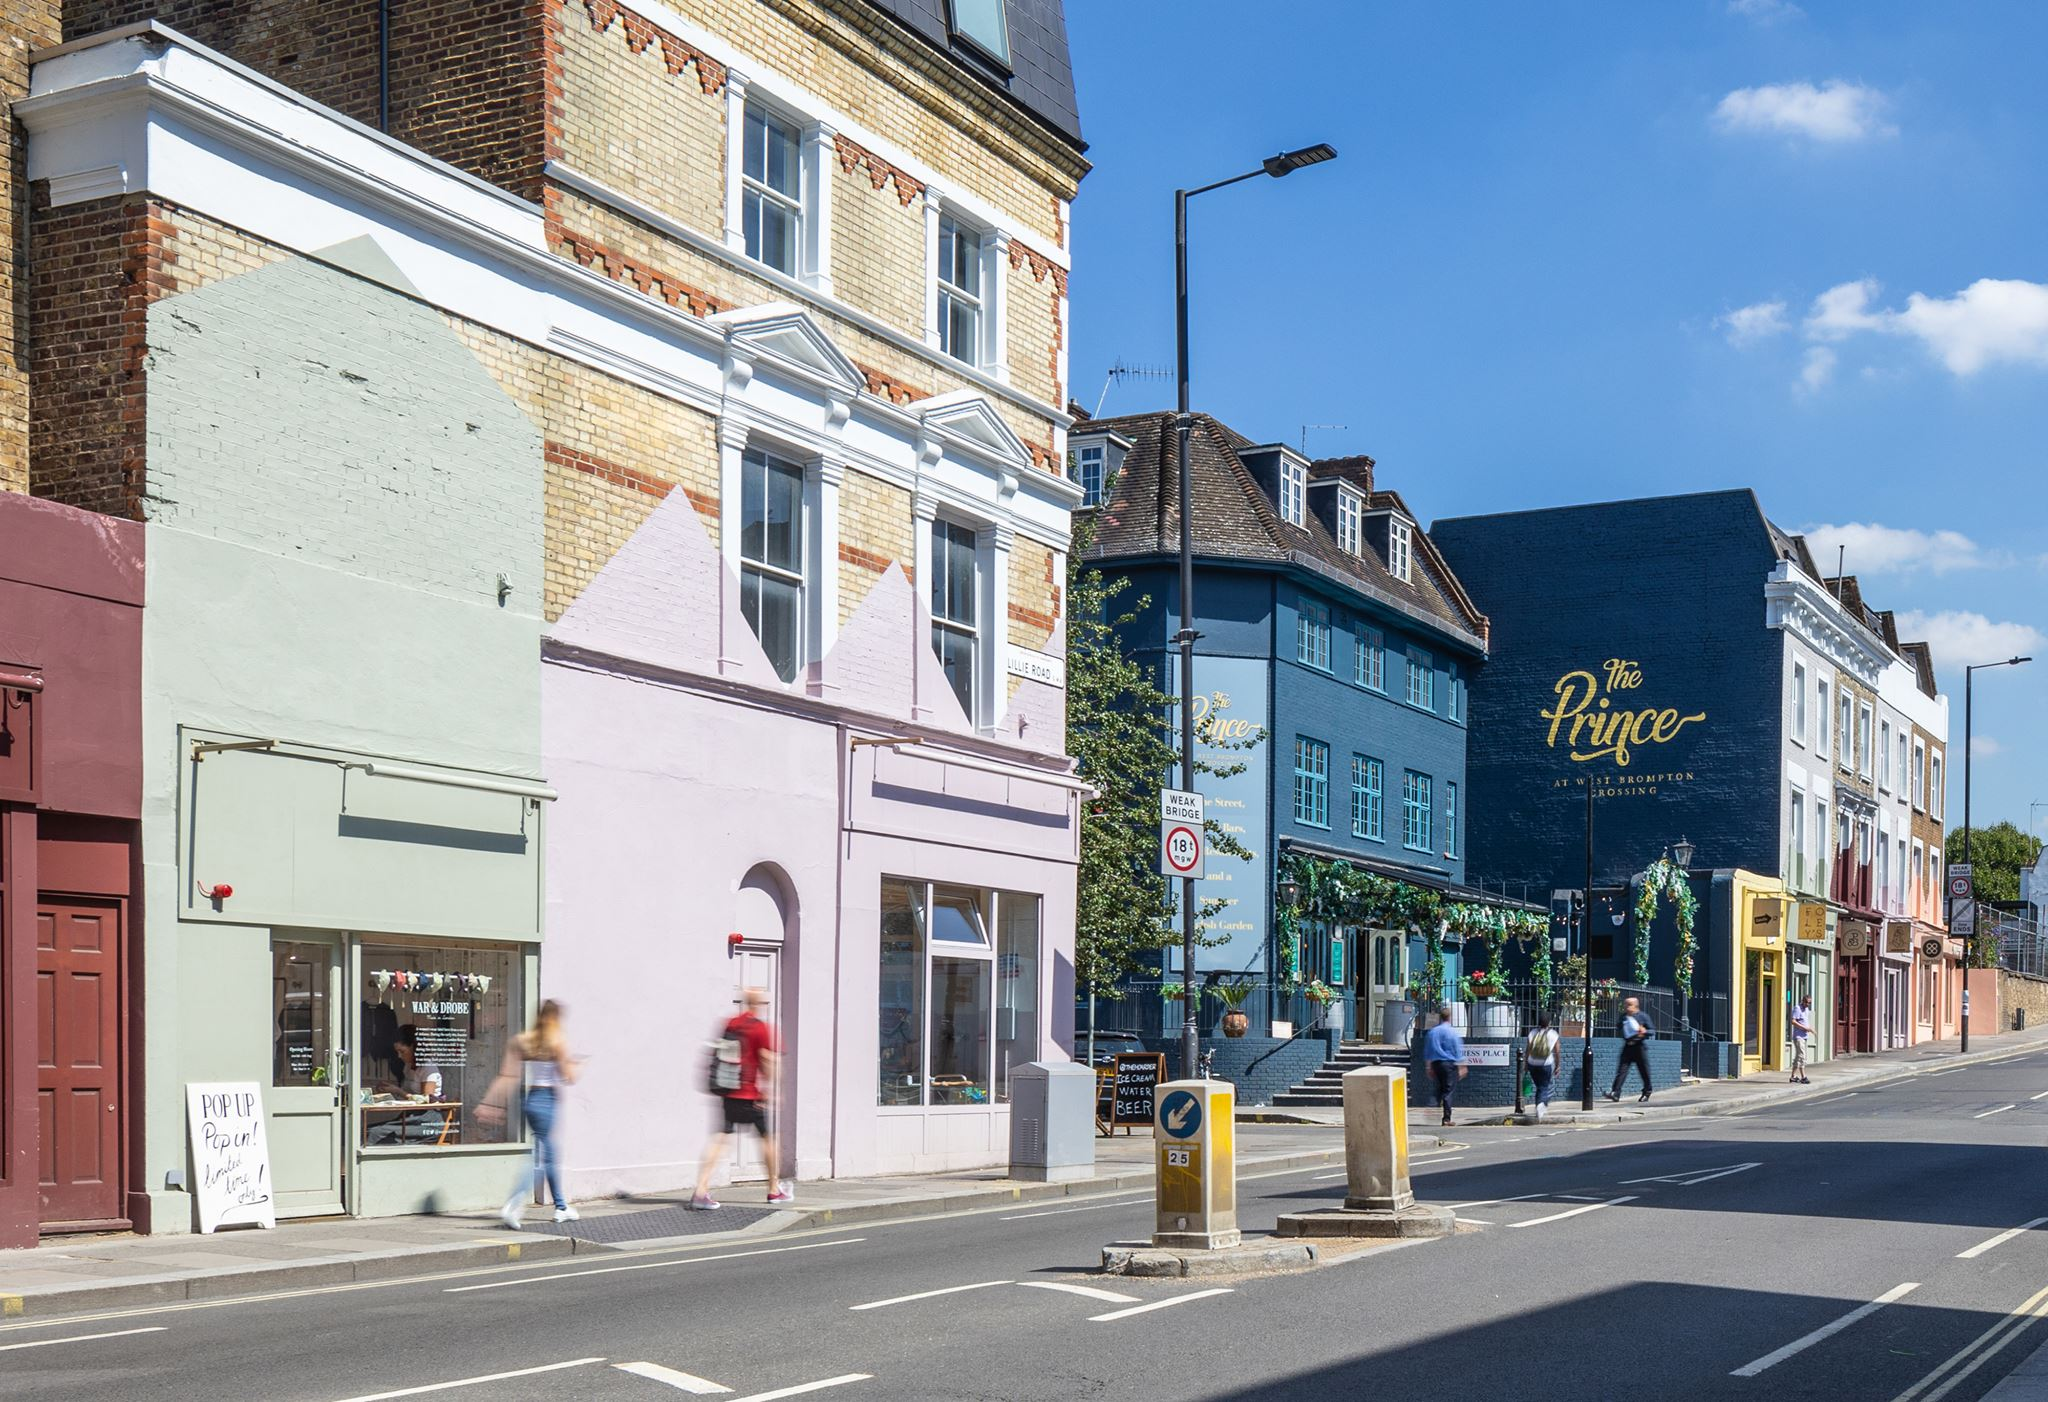 Colourful shops and restaurants on a pop-up high street